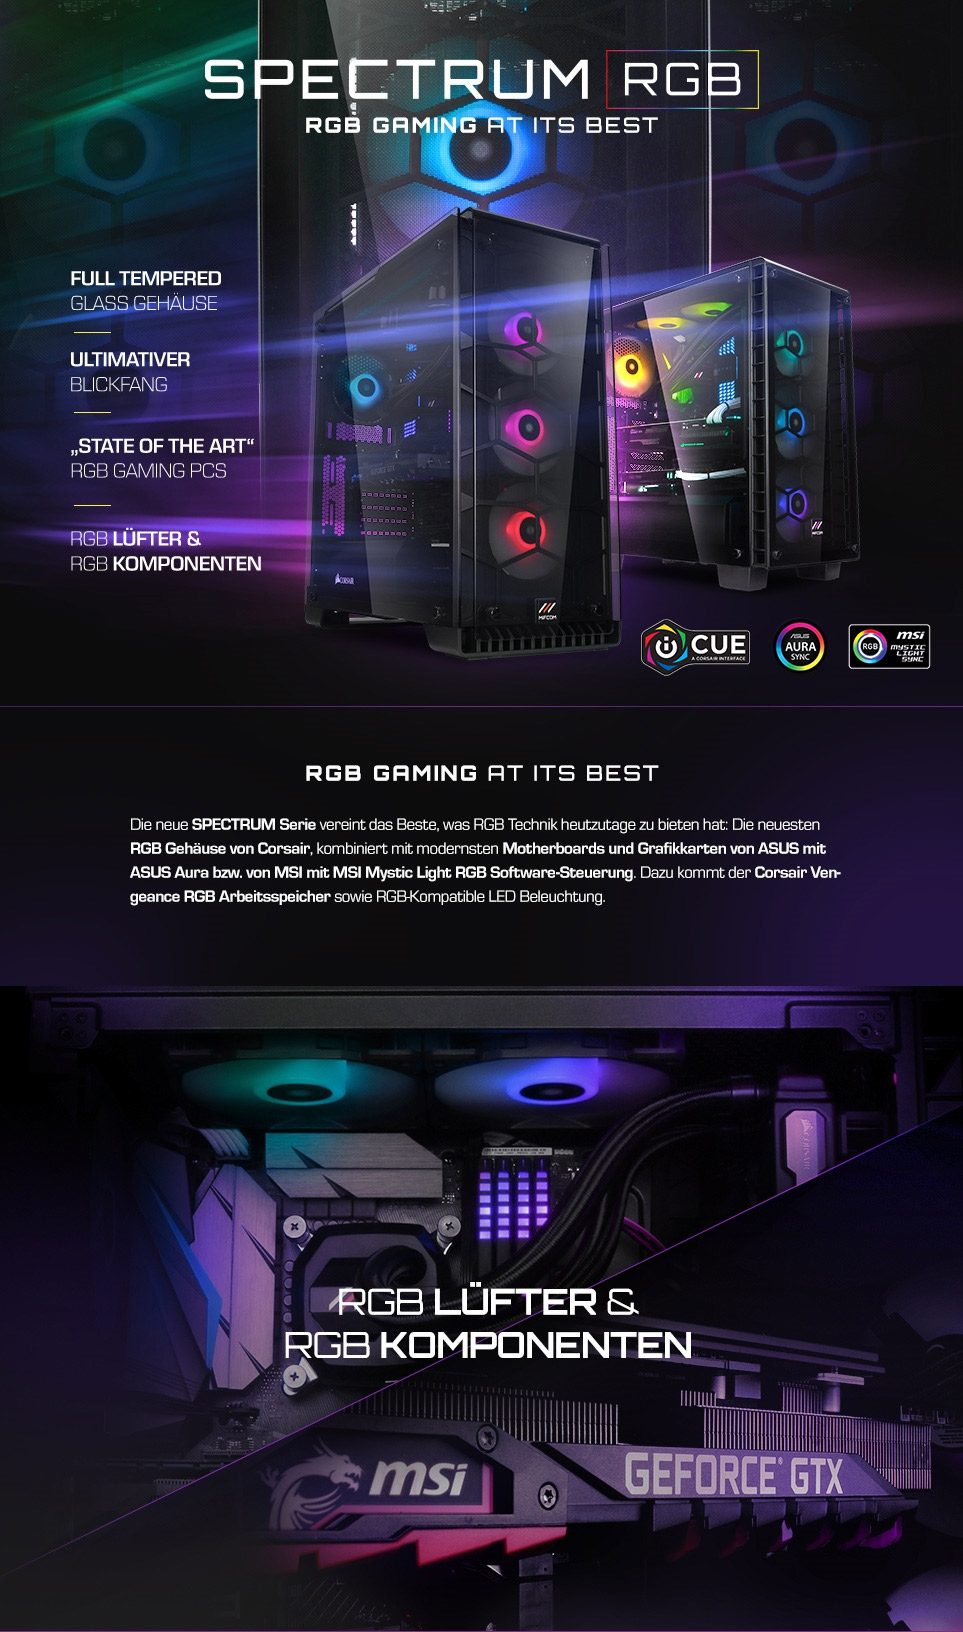 MIFCOM Spectrum: Der ultimative High-End RGB-Gaming PC